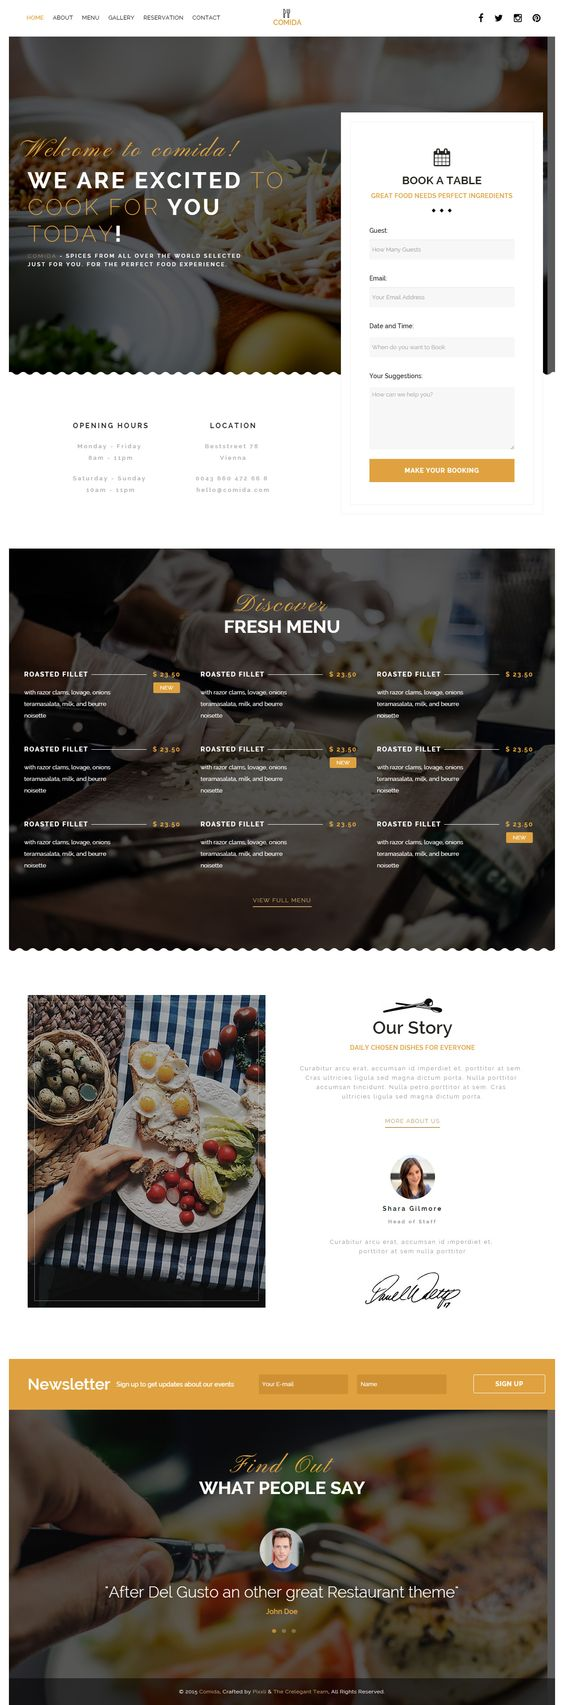 Comida is Premium full Responsive Retina #Restaurant #HTML5 template. #ParallaxScrolling. Bootstrap 3 Framework. Google Map. Test free demo at: http://www.responsivemiracle.com/cms/comida-premium-responsive-restaurant-html5-template/